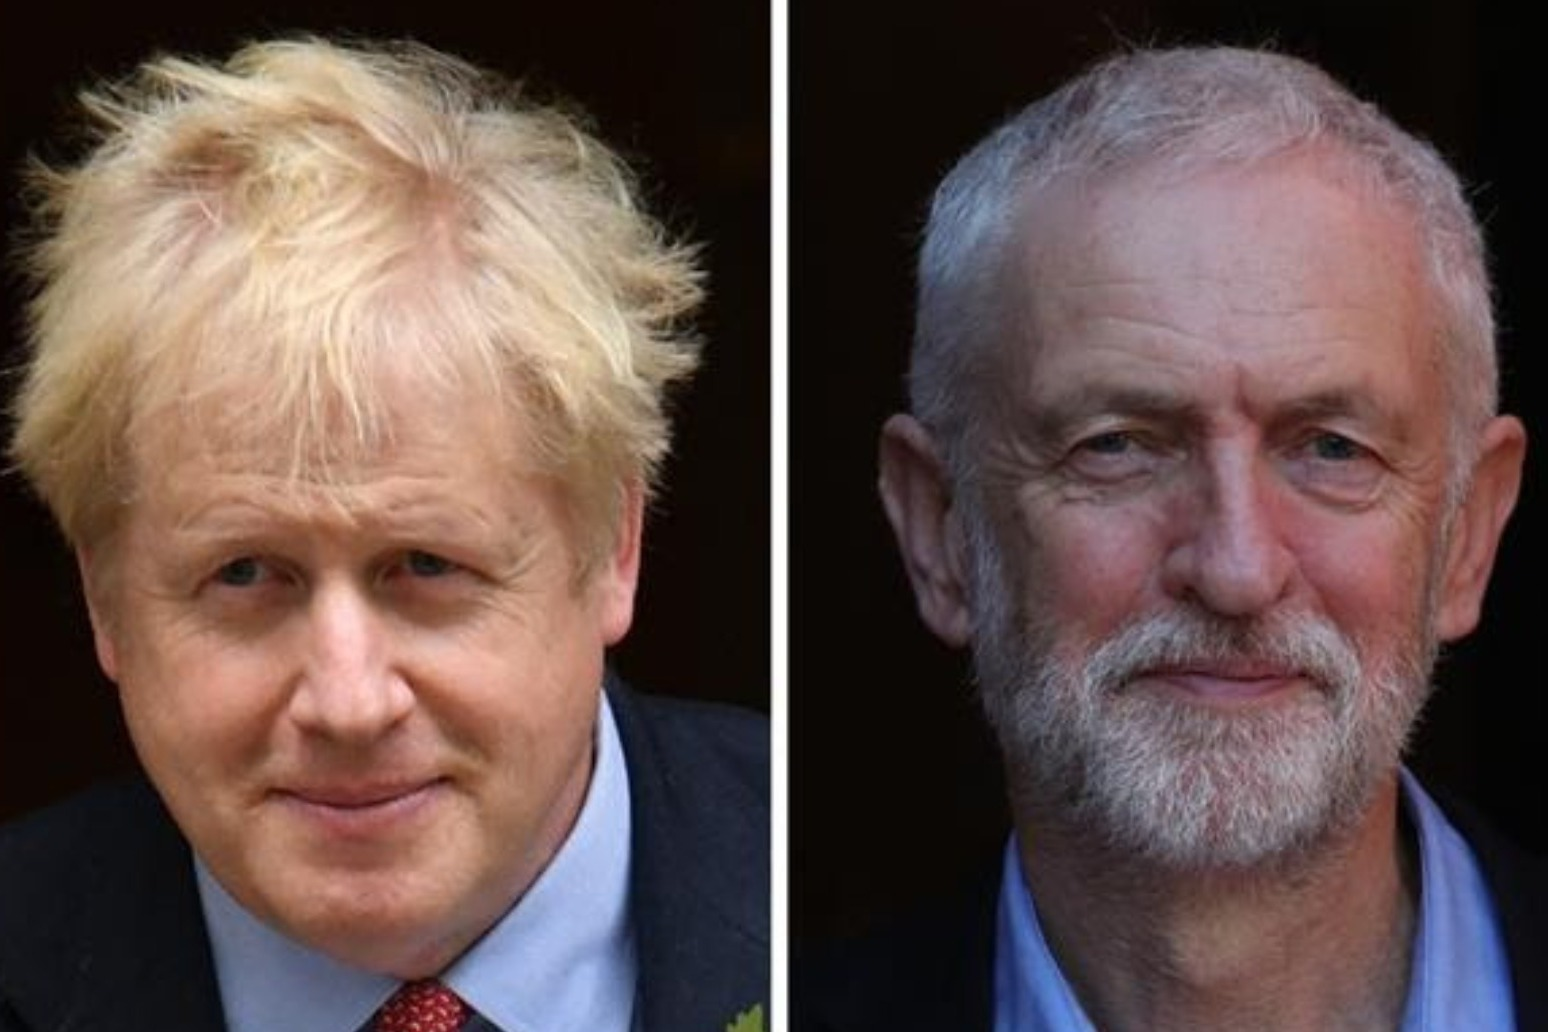 JOHNSON AND CORBYN HEAD FOR TV ELECTION SHOWDOWN